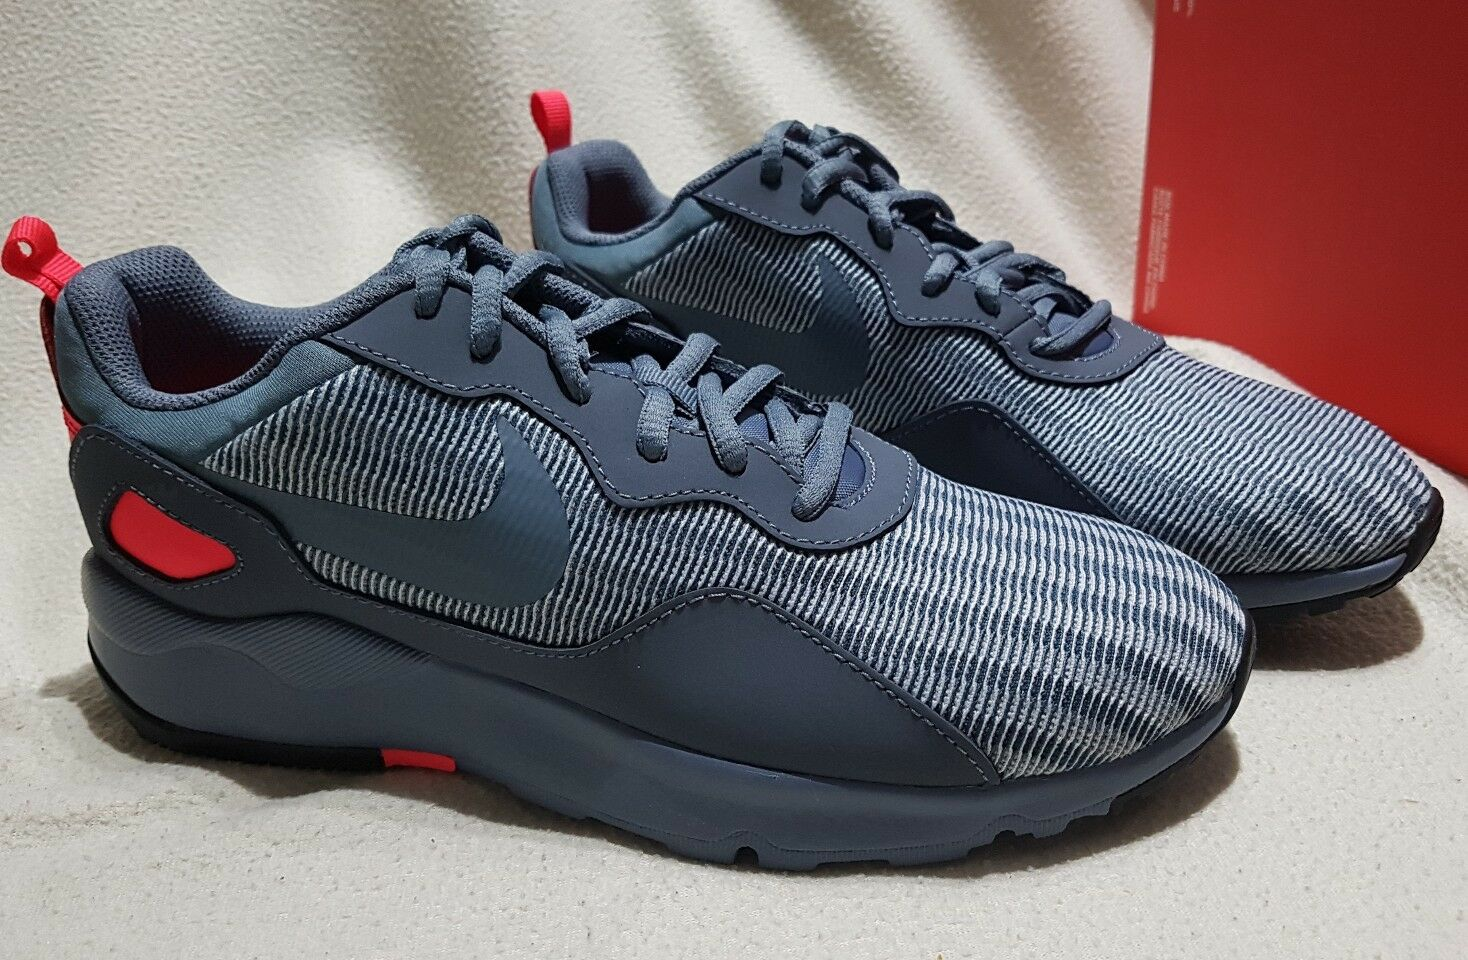 NIKE Femme LD courirNER SE  TRAINERS TRAINERS TRAINERS Baskets -6 / EUR 40 -  69.95 3dc314